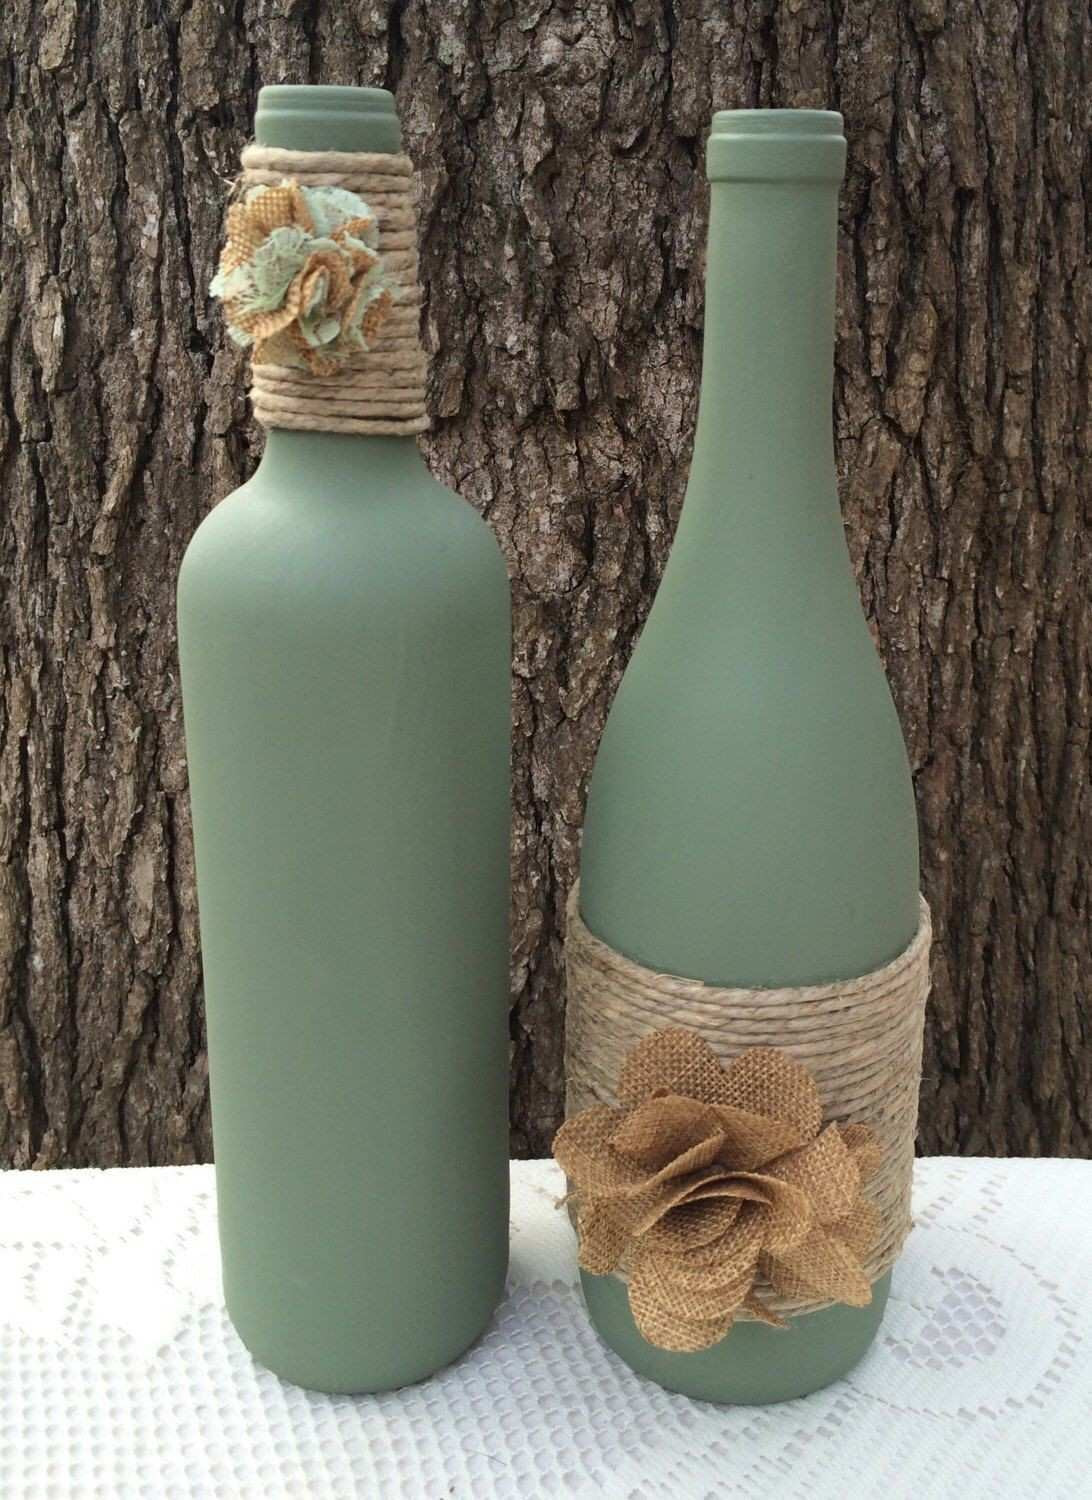 painting glass vases of diy paint on glass inspirational soo cool elegant h vases diy flower regarding diy paint on glass elegant sage hand painted wine bottles with twine and burlap flowers set